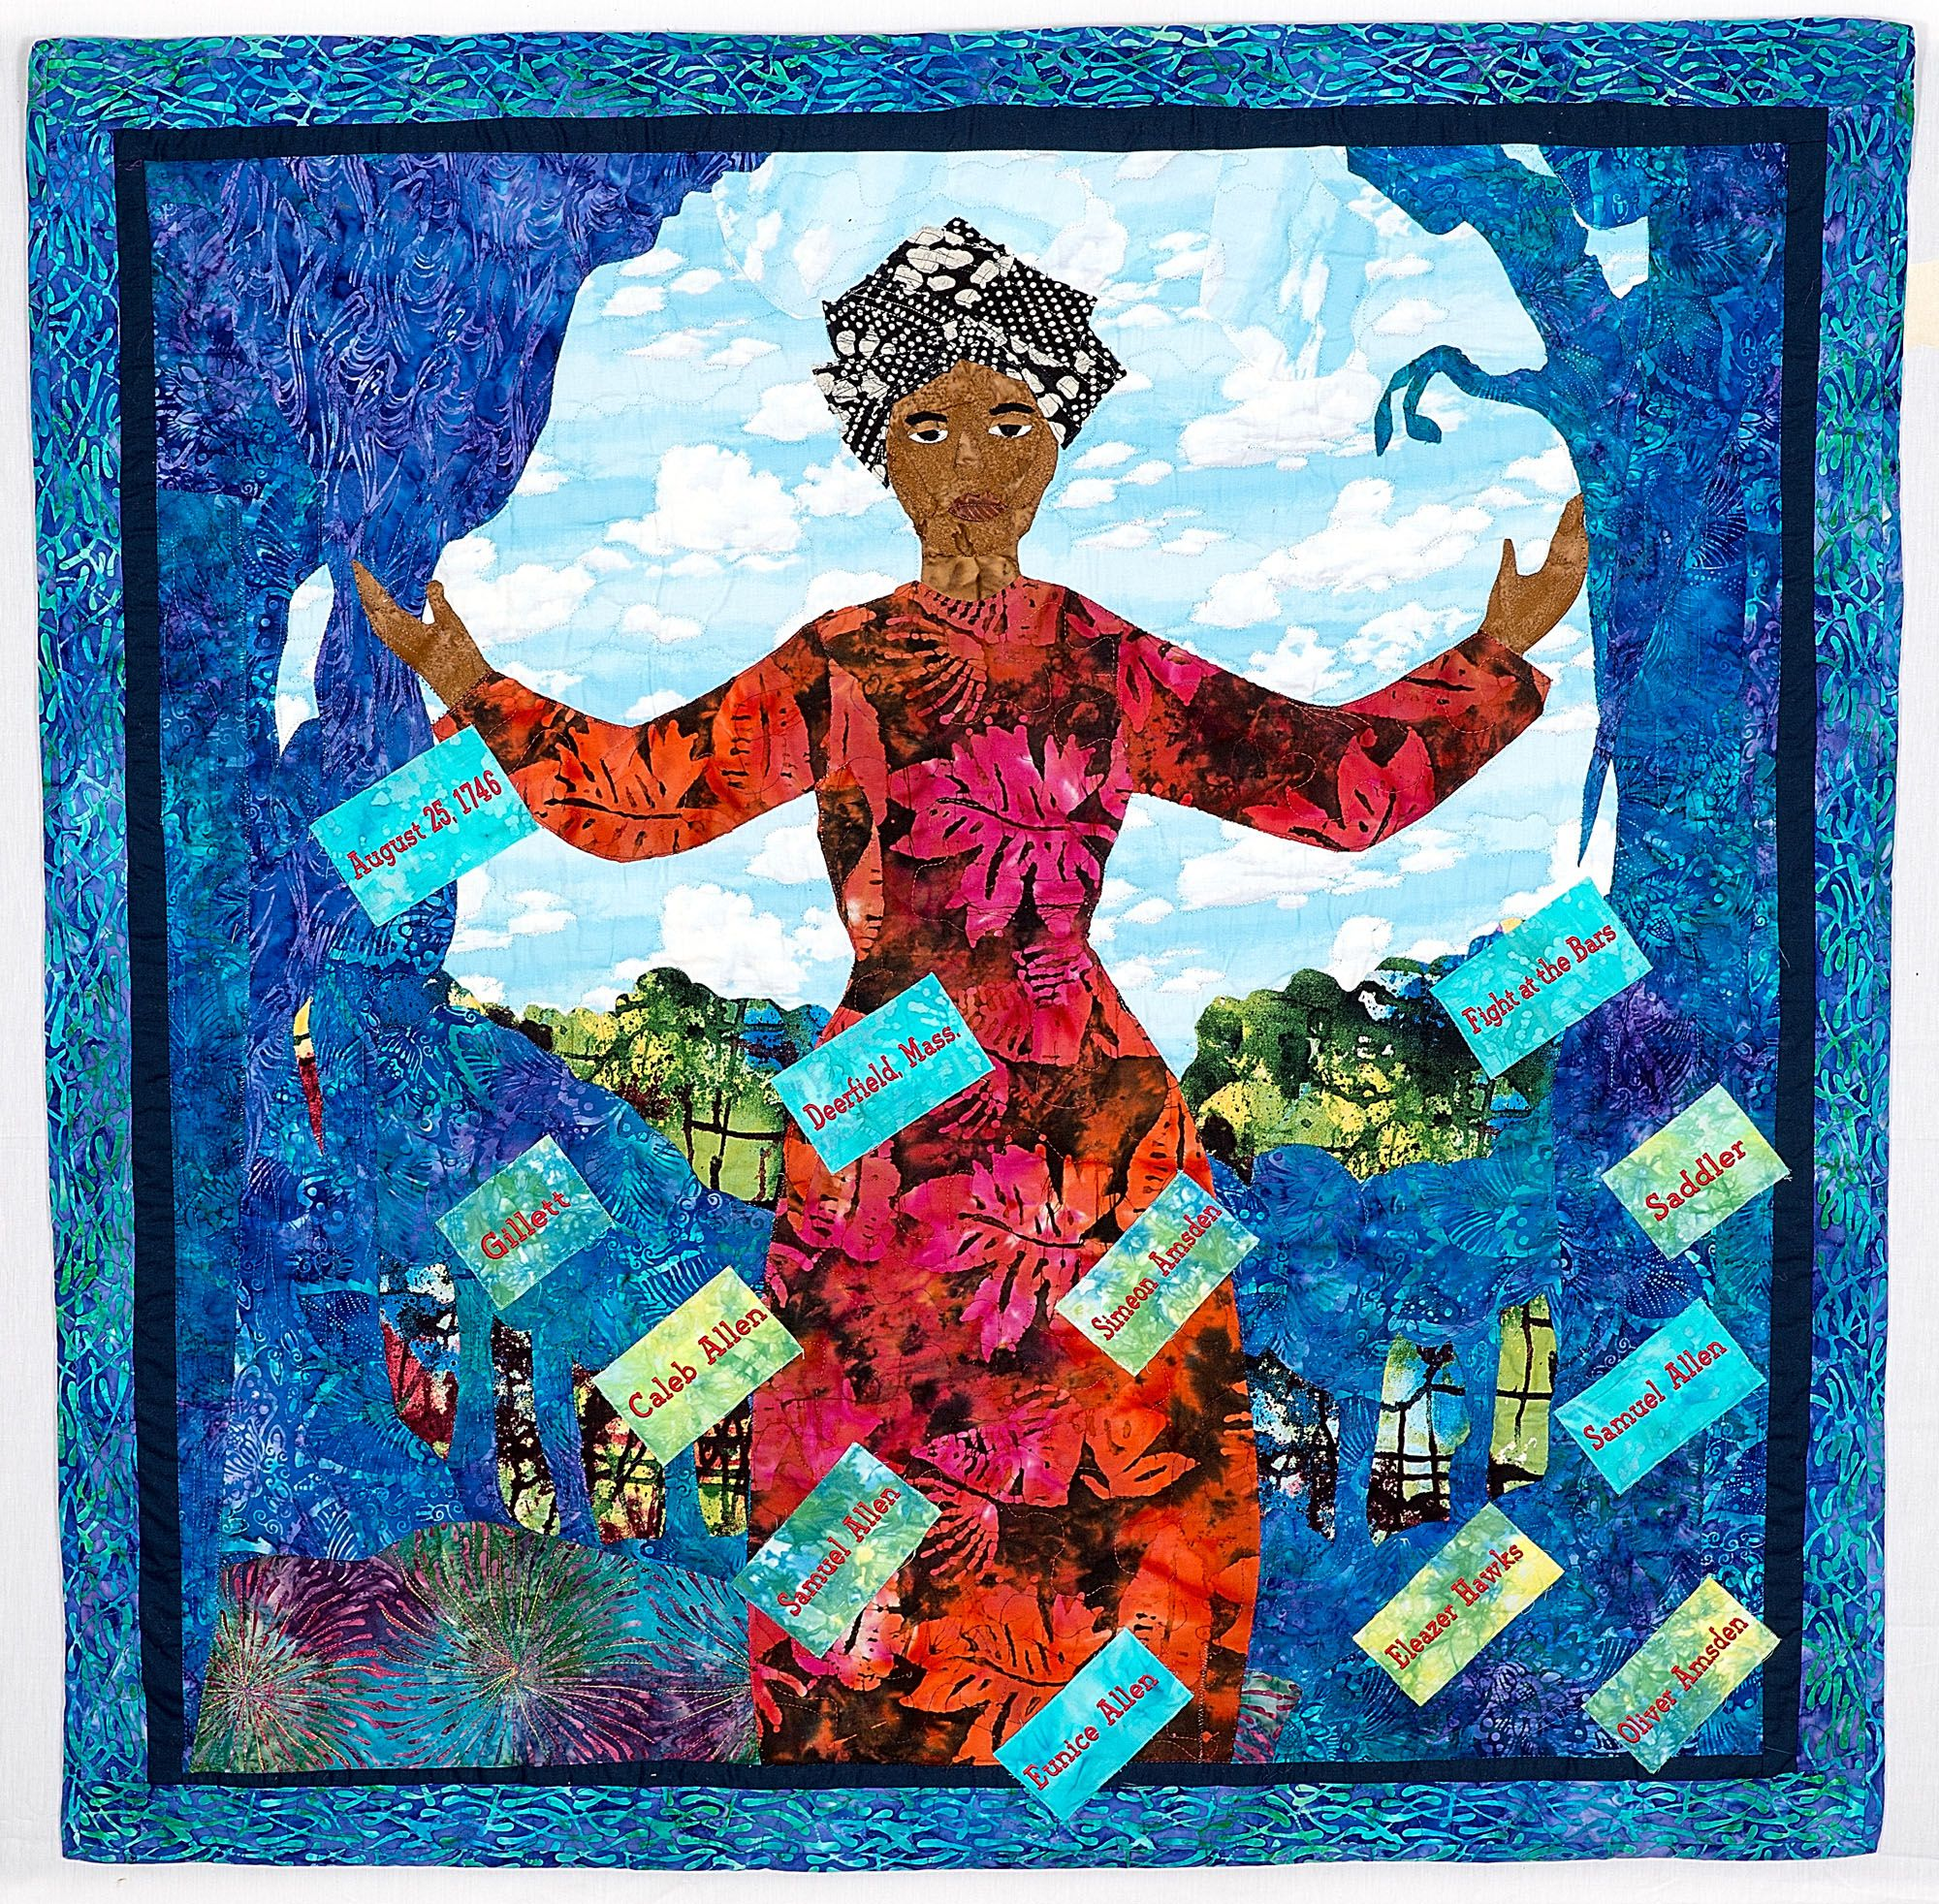 Freedom Center Extends Popular Story Quilt Exhibition The Largest ... : african american quilts - Adamdwight.com